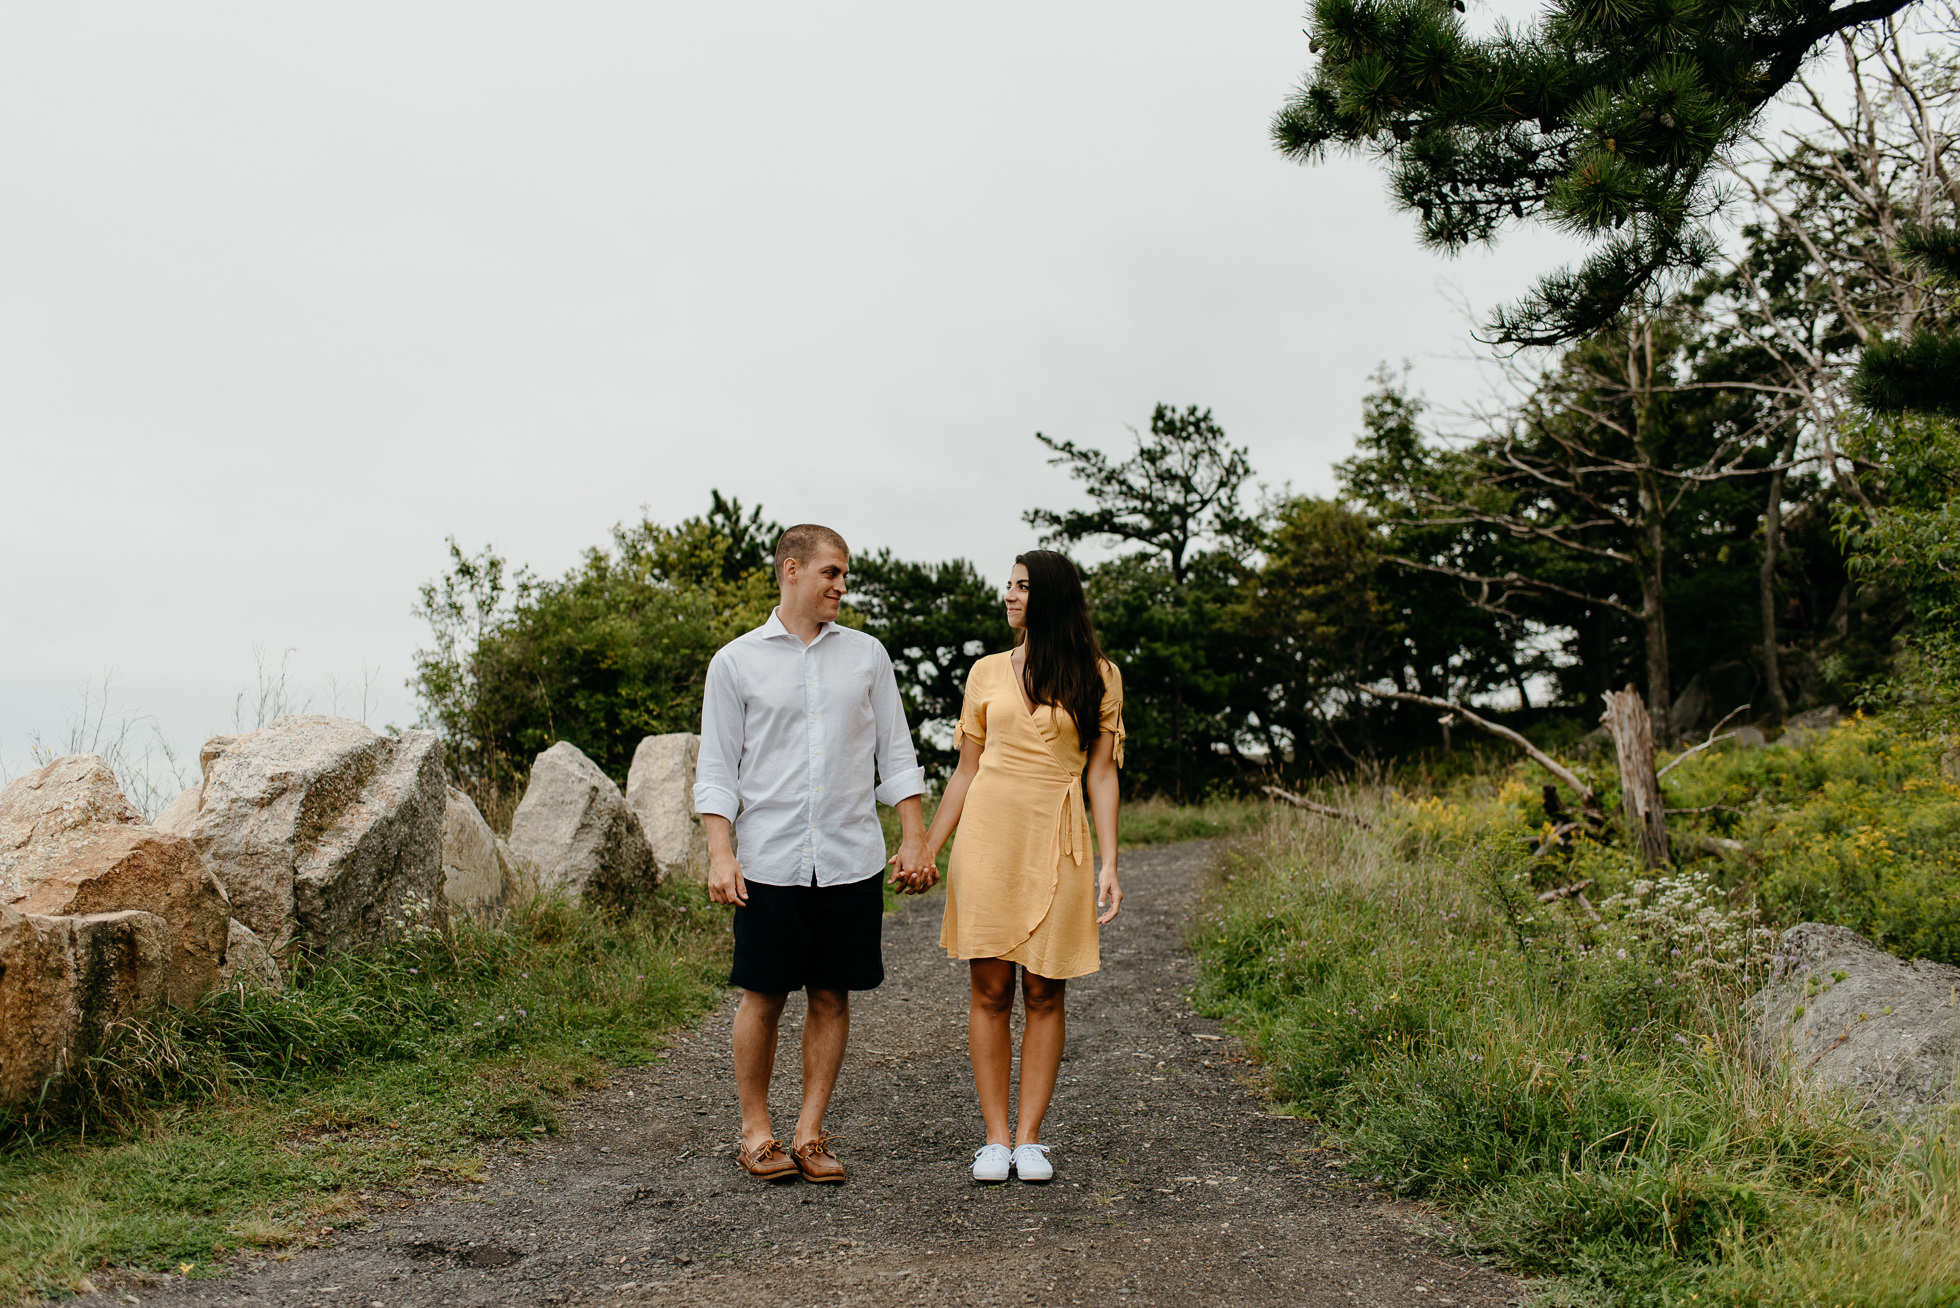 Catskills wedding photographers